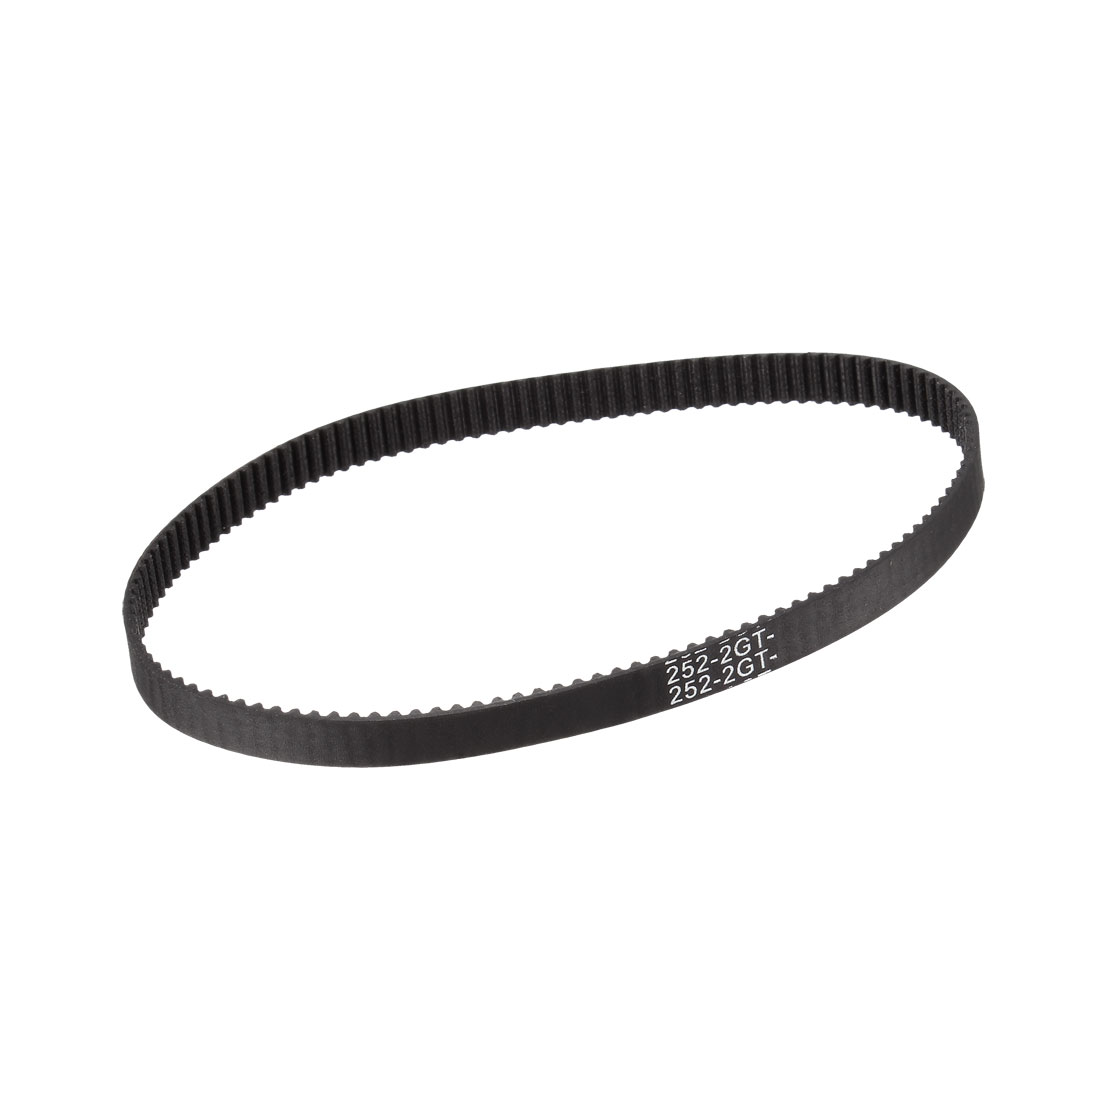 GT2 Timing Belt 252mm Closed Fit Synchronous Wheel for 3D Printer